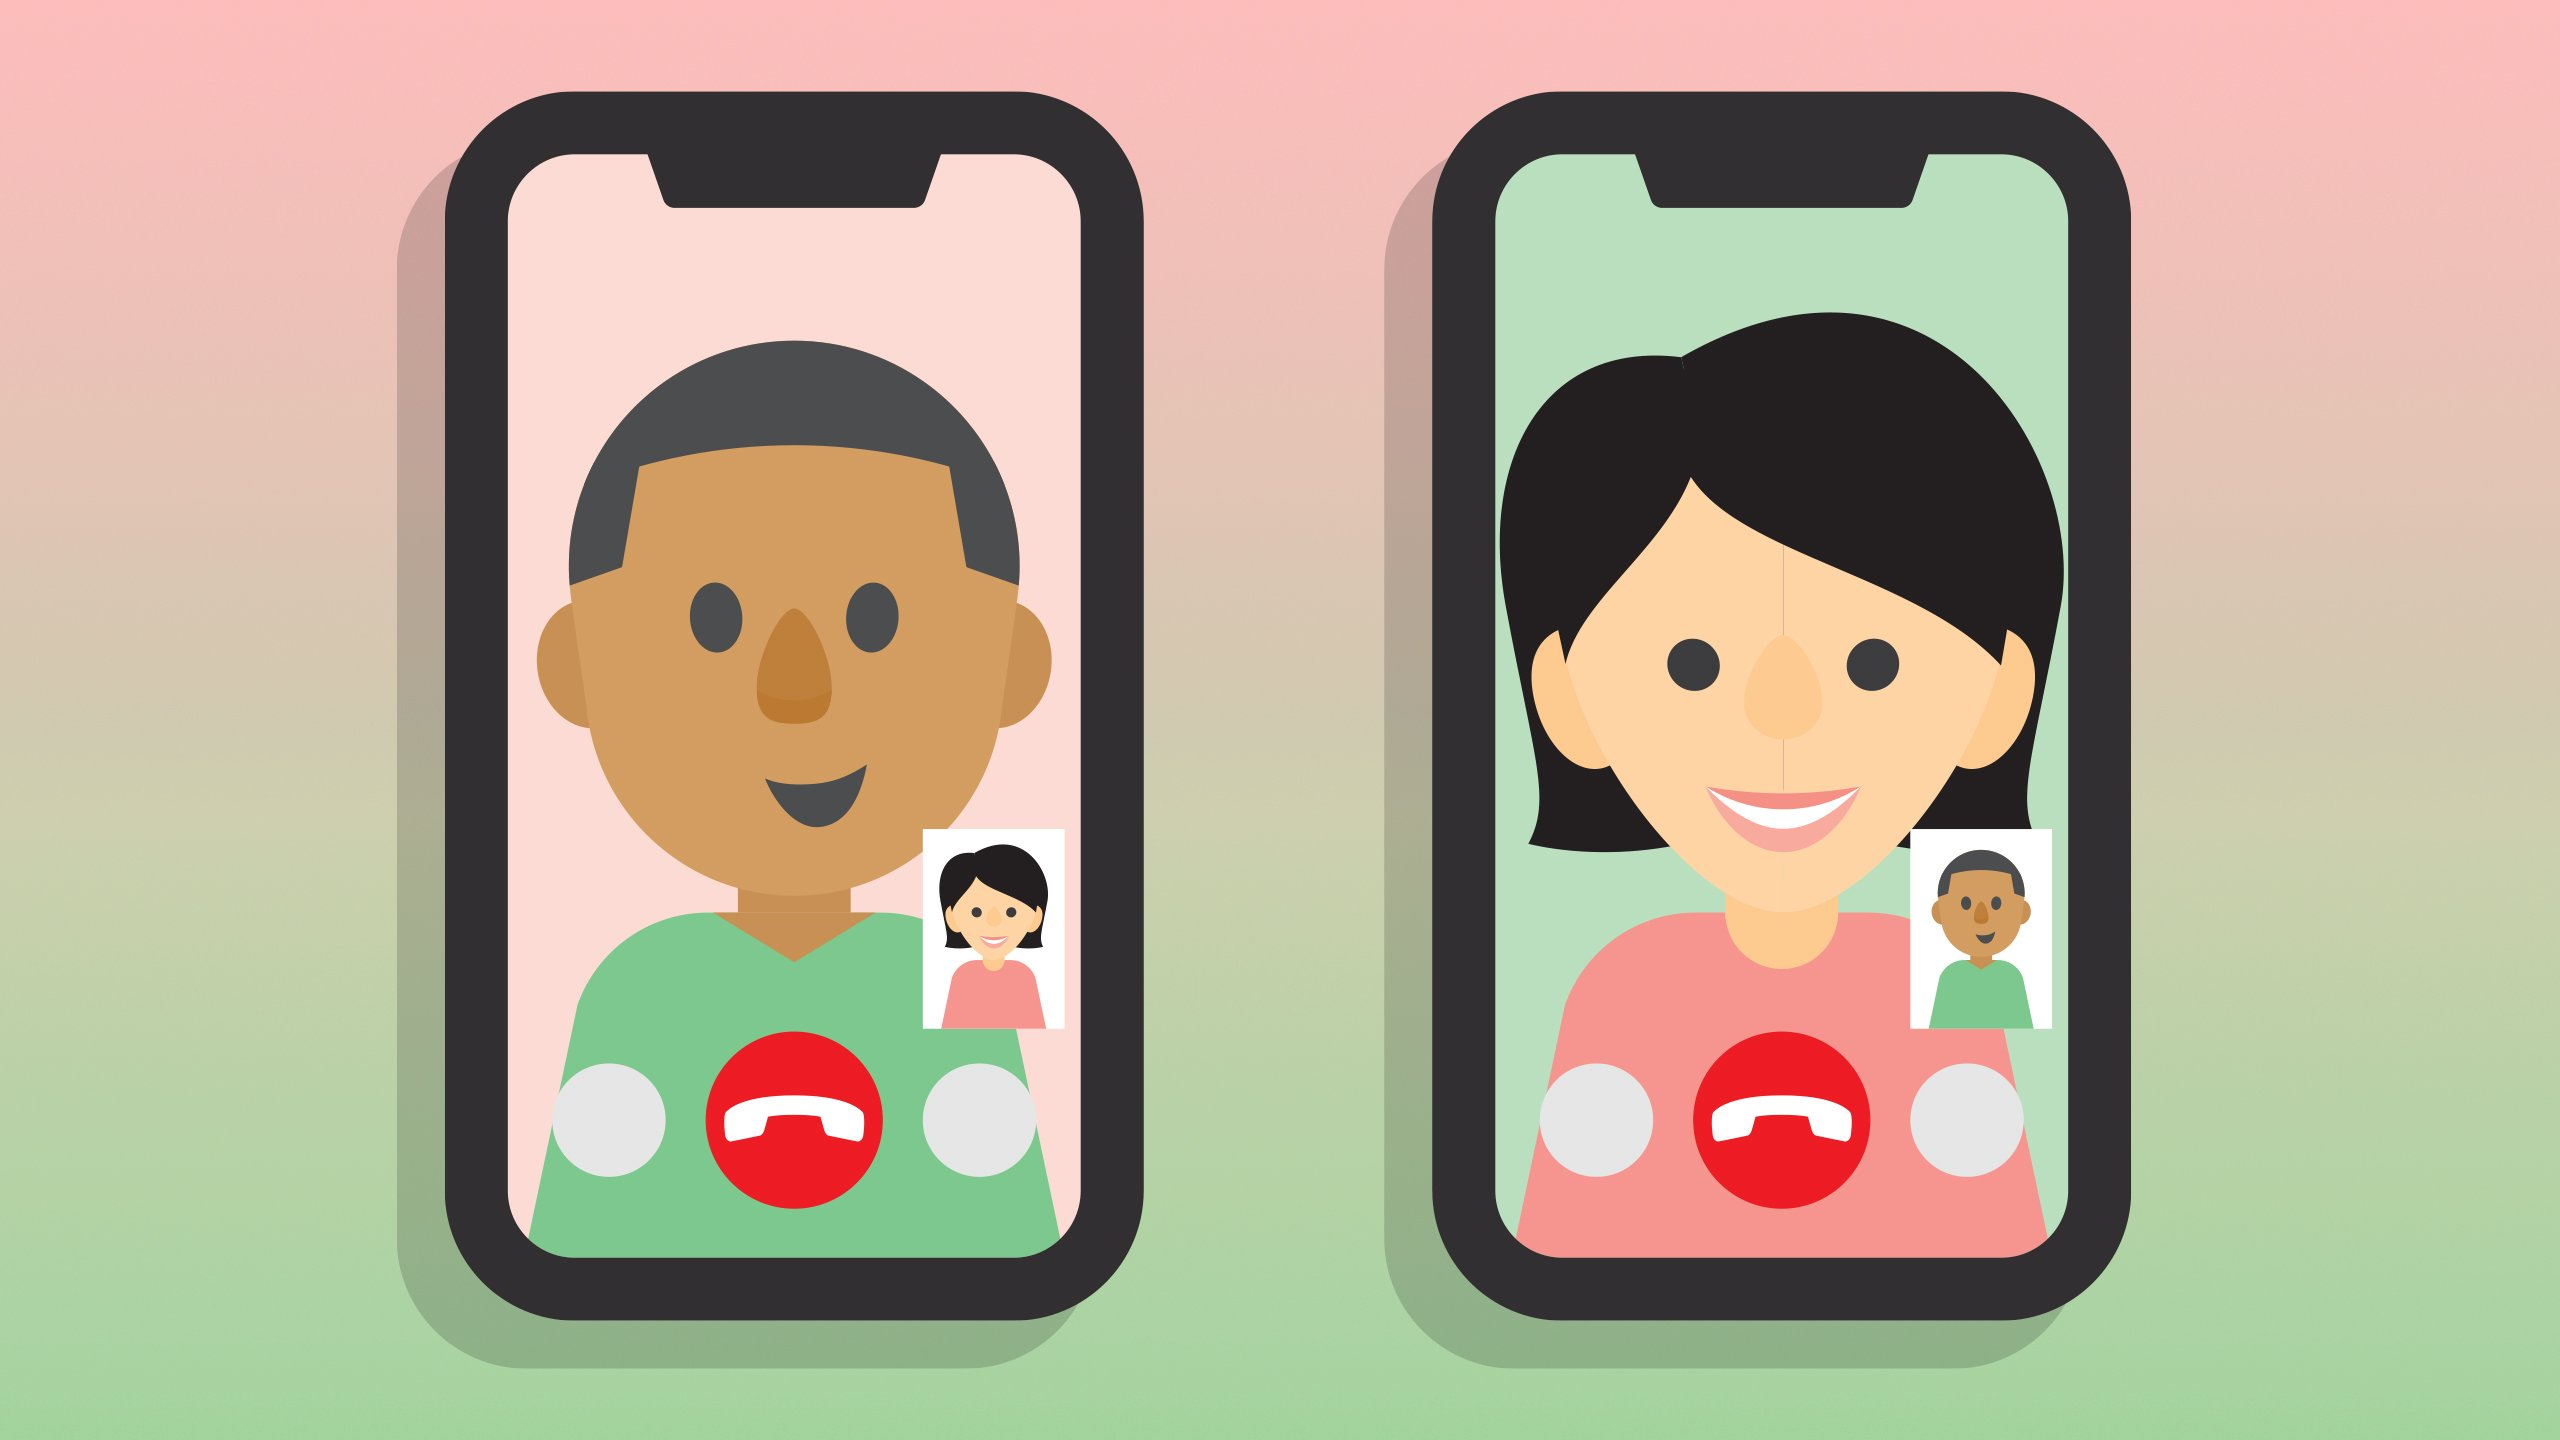 What Is Video Calling? How To Make Video Calls! [Guide]